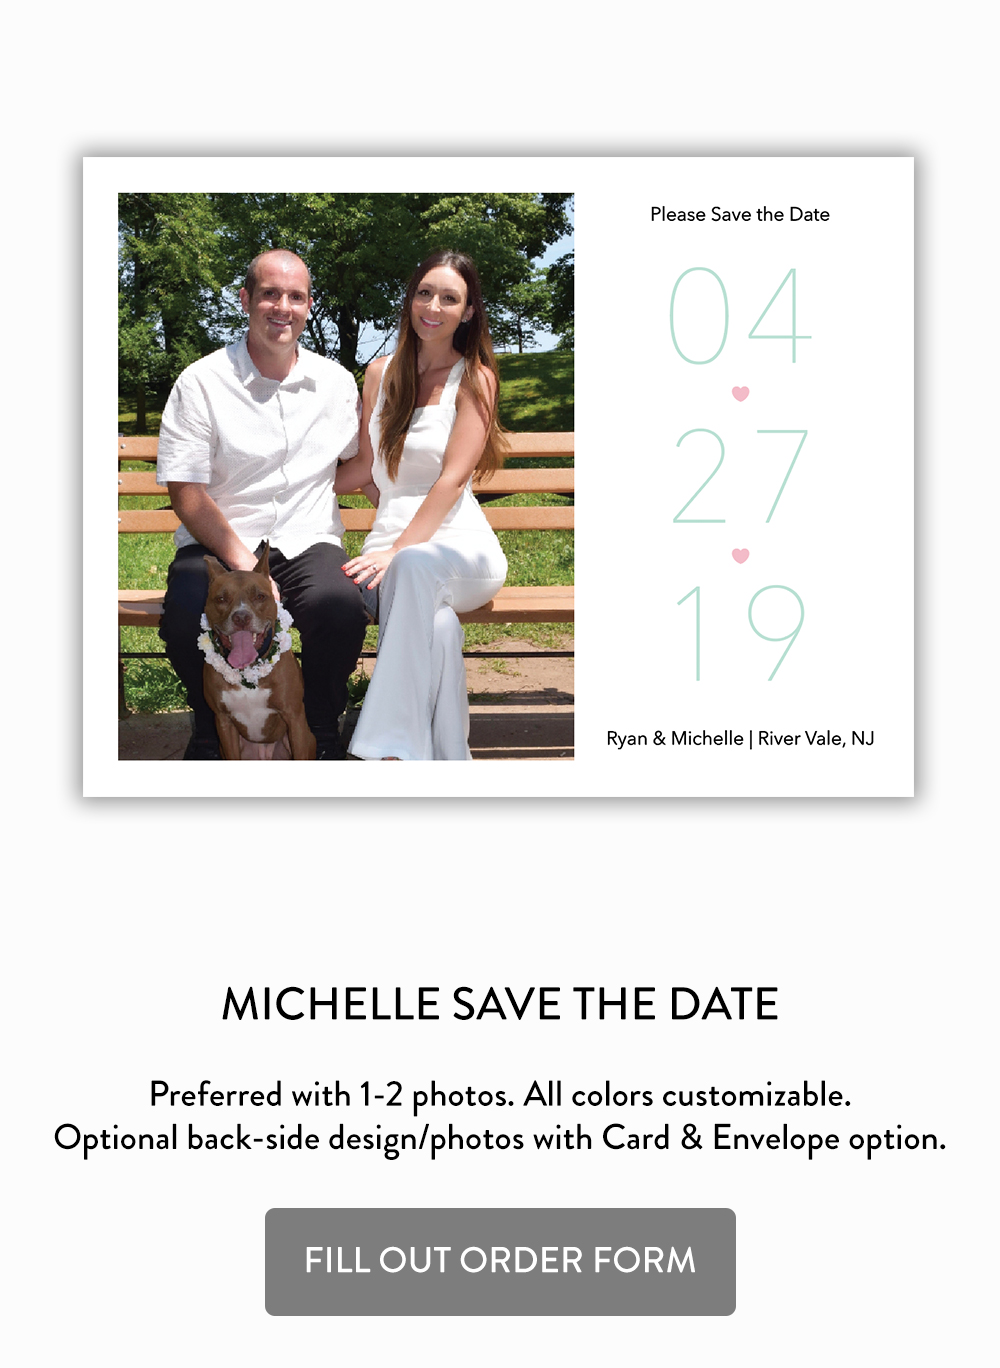 Michelle-SavetheDate.jpg